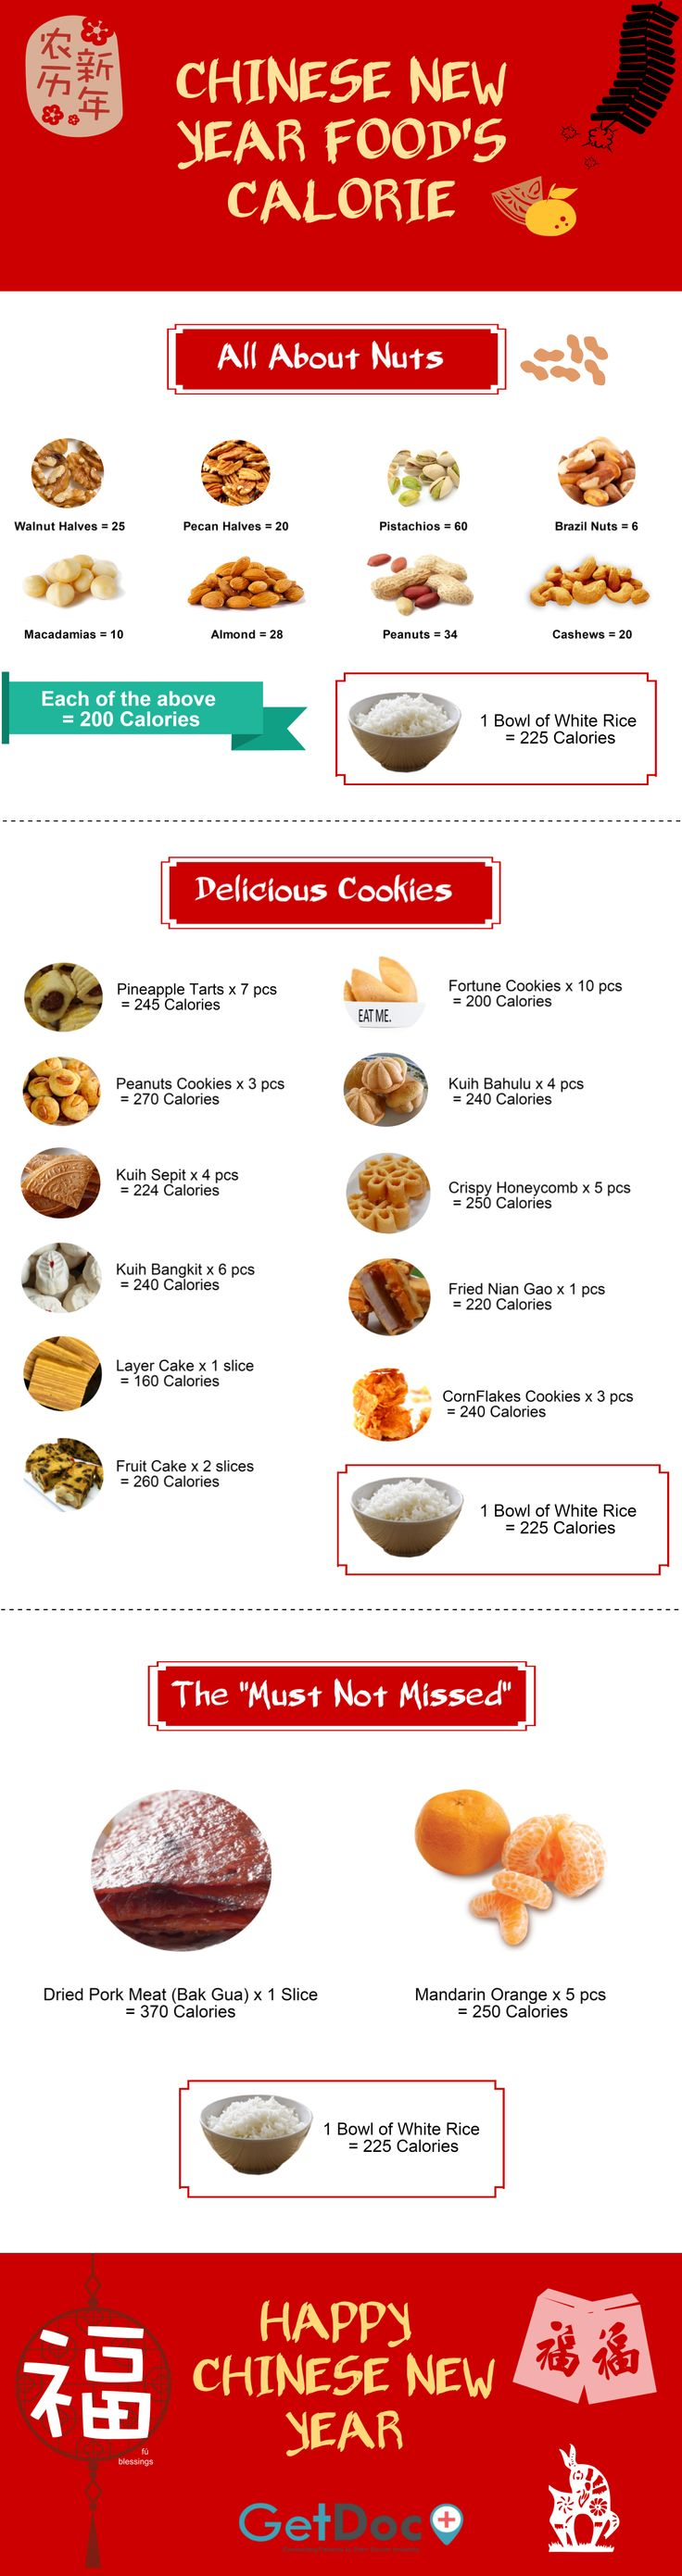 Chinese New Year is just a few days away, take note on the food that you eat during Chinese New Year so that you won't overeat :) www.GetDoc.my | Easier and Faster Way to Find Your Nearby Doctor. Anytime. Anywhere.